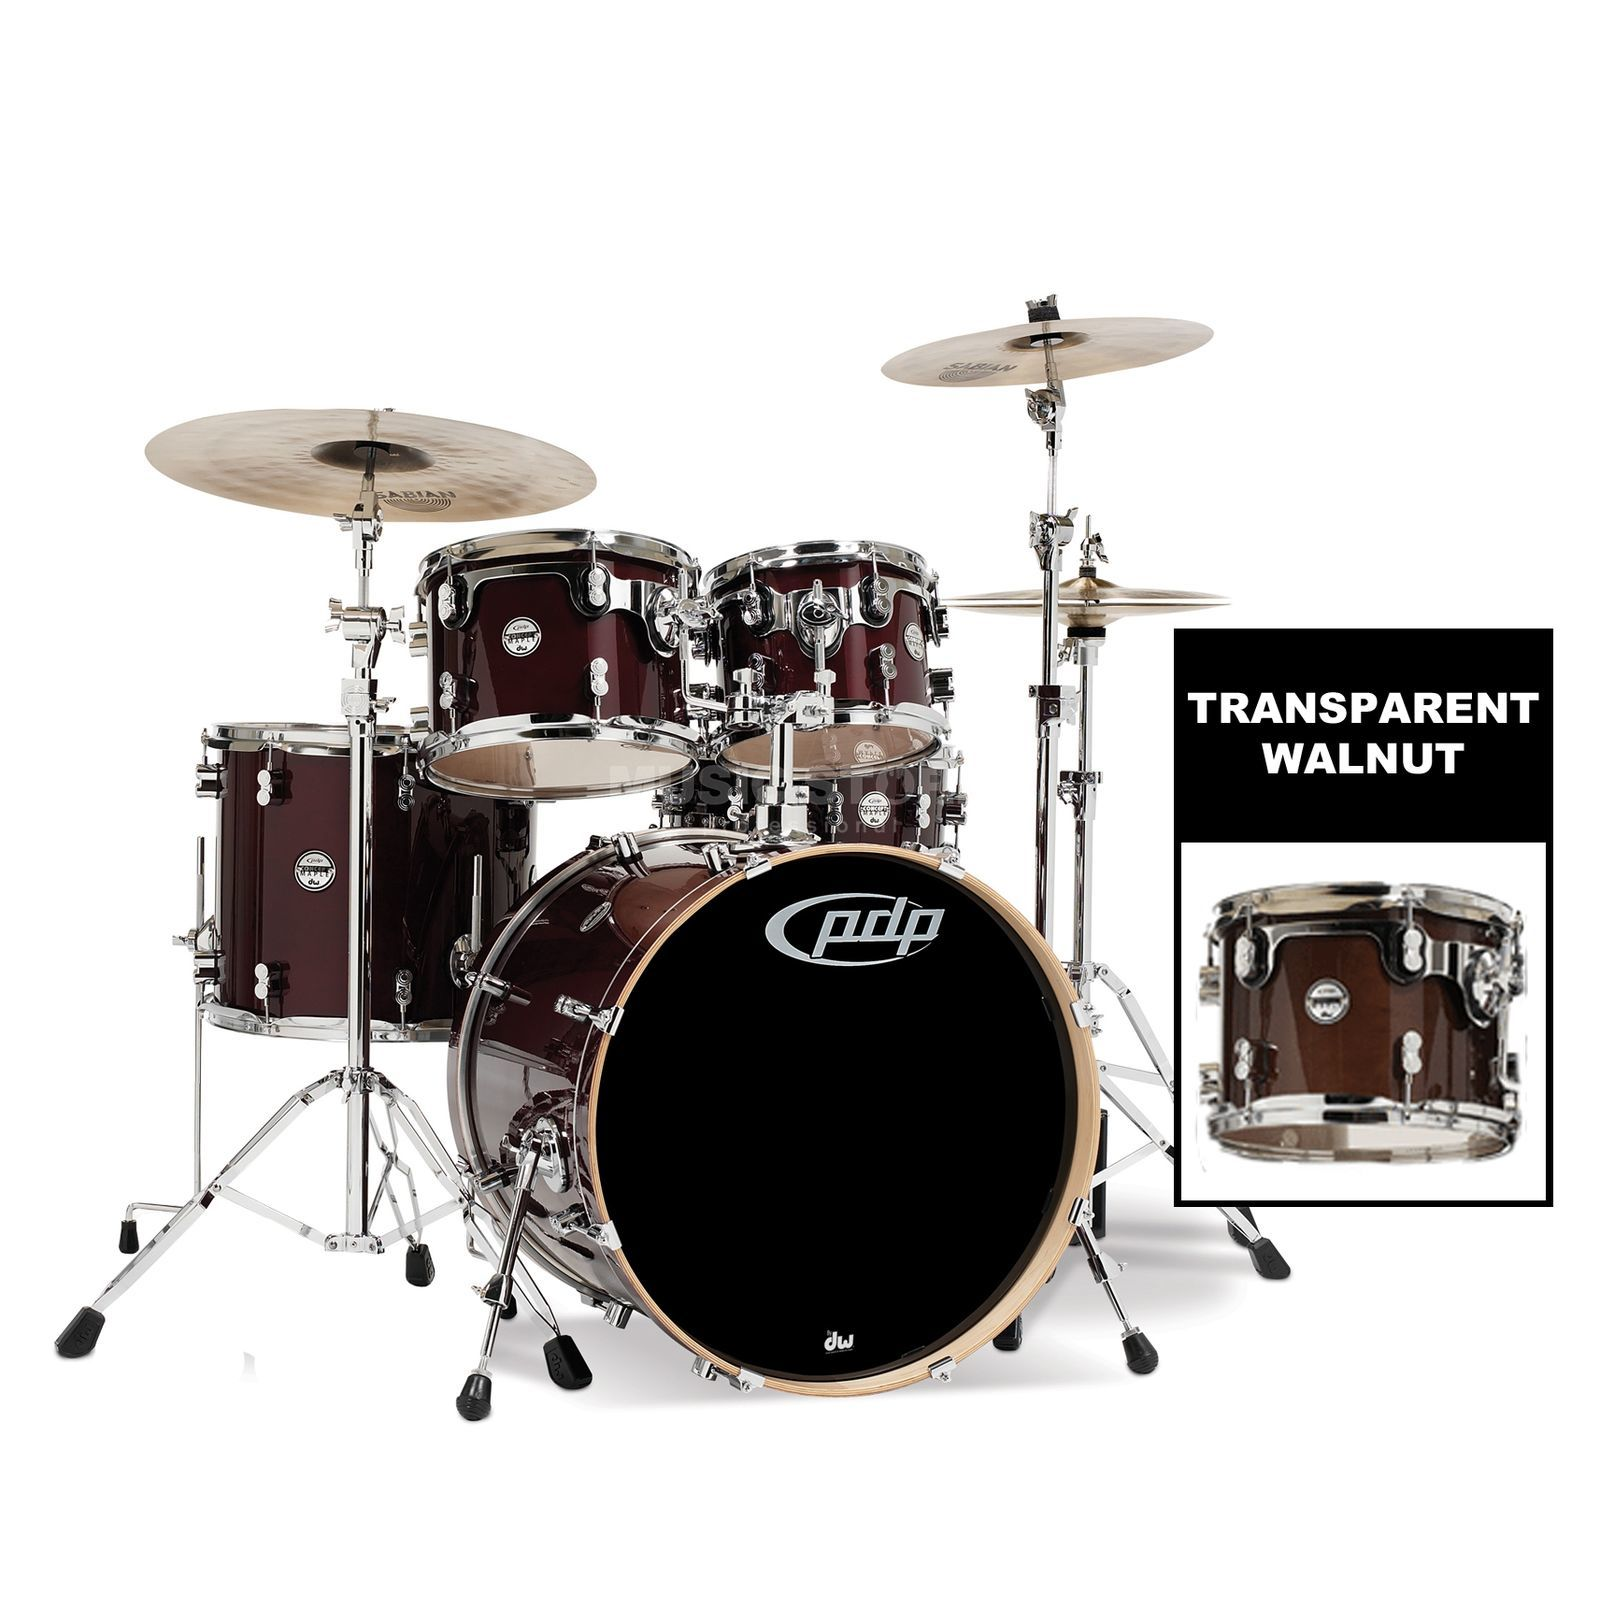 Drum Workshop PDP Concept Maple Studio CM5, Transparent Walnut Produktbild